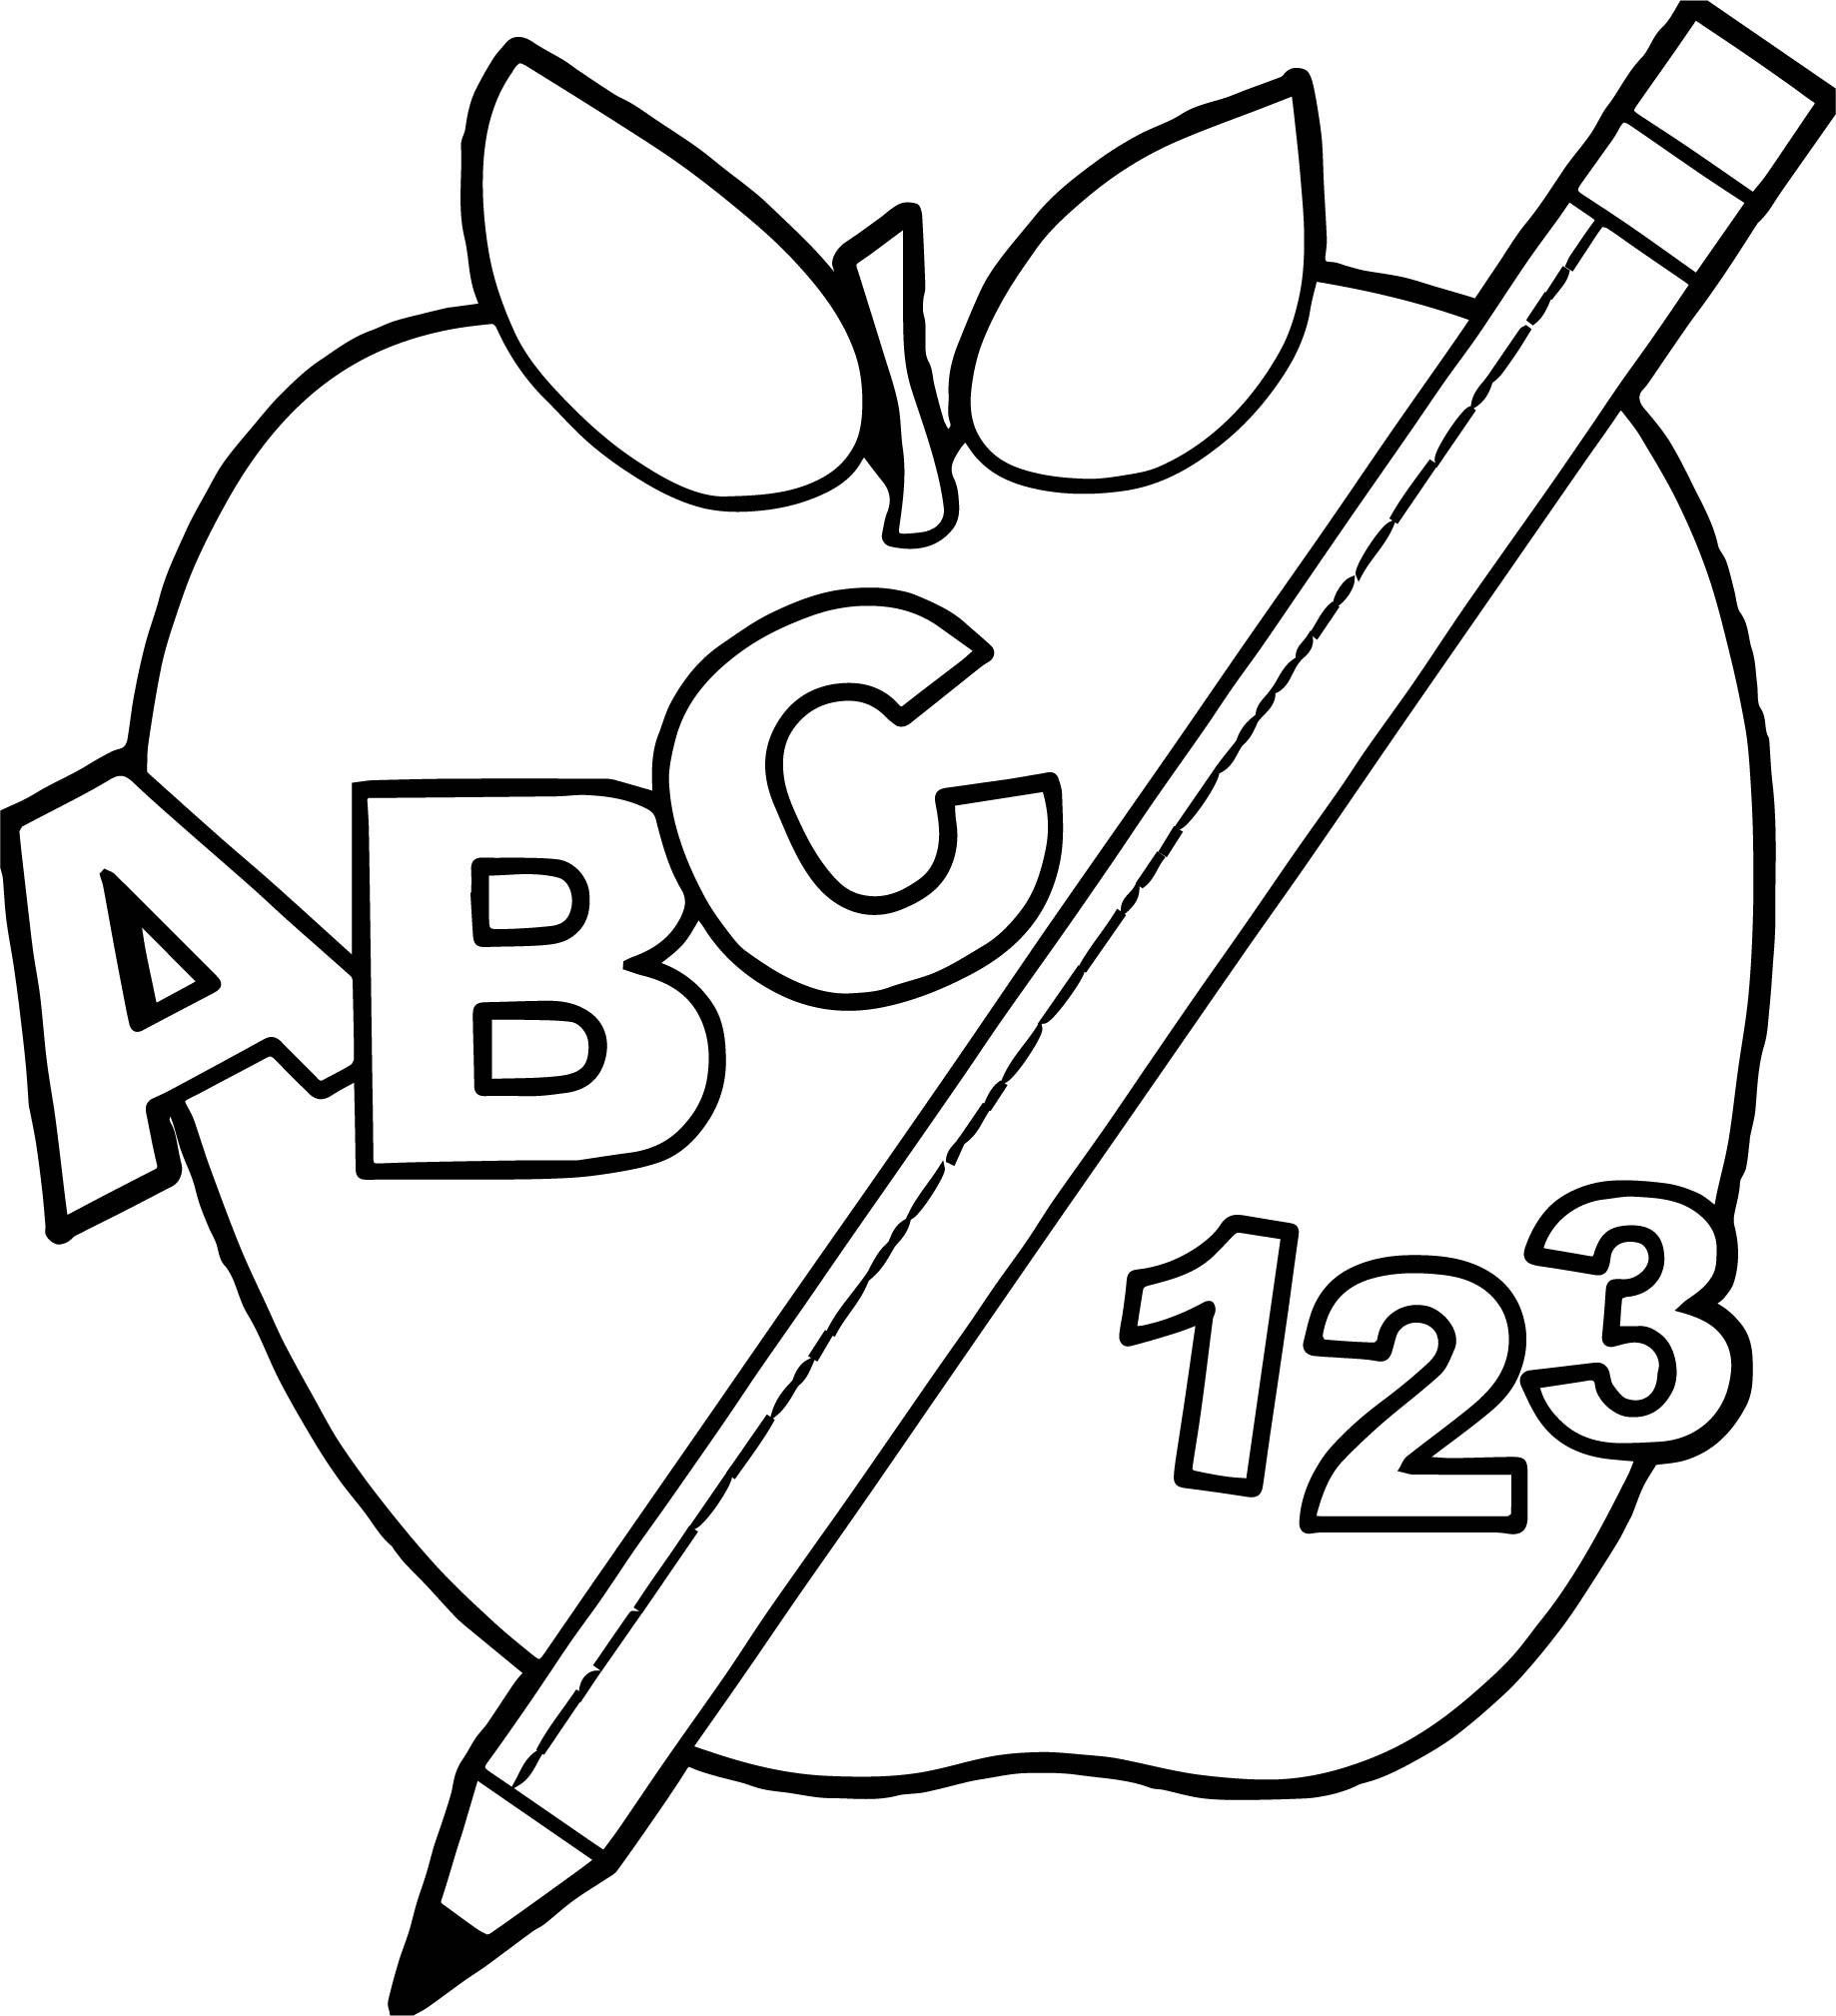 Coloring Pages Pencil Abc Coloring Pages Apple Coloring Pages Coloring Pages For Teenagers